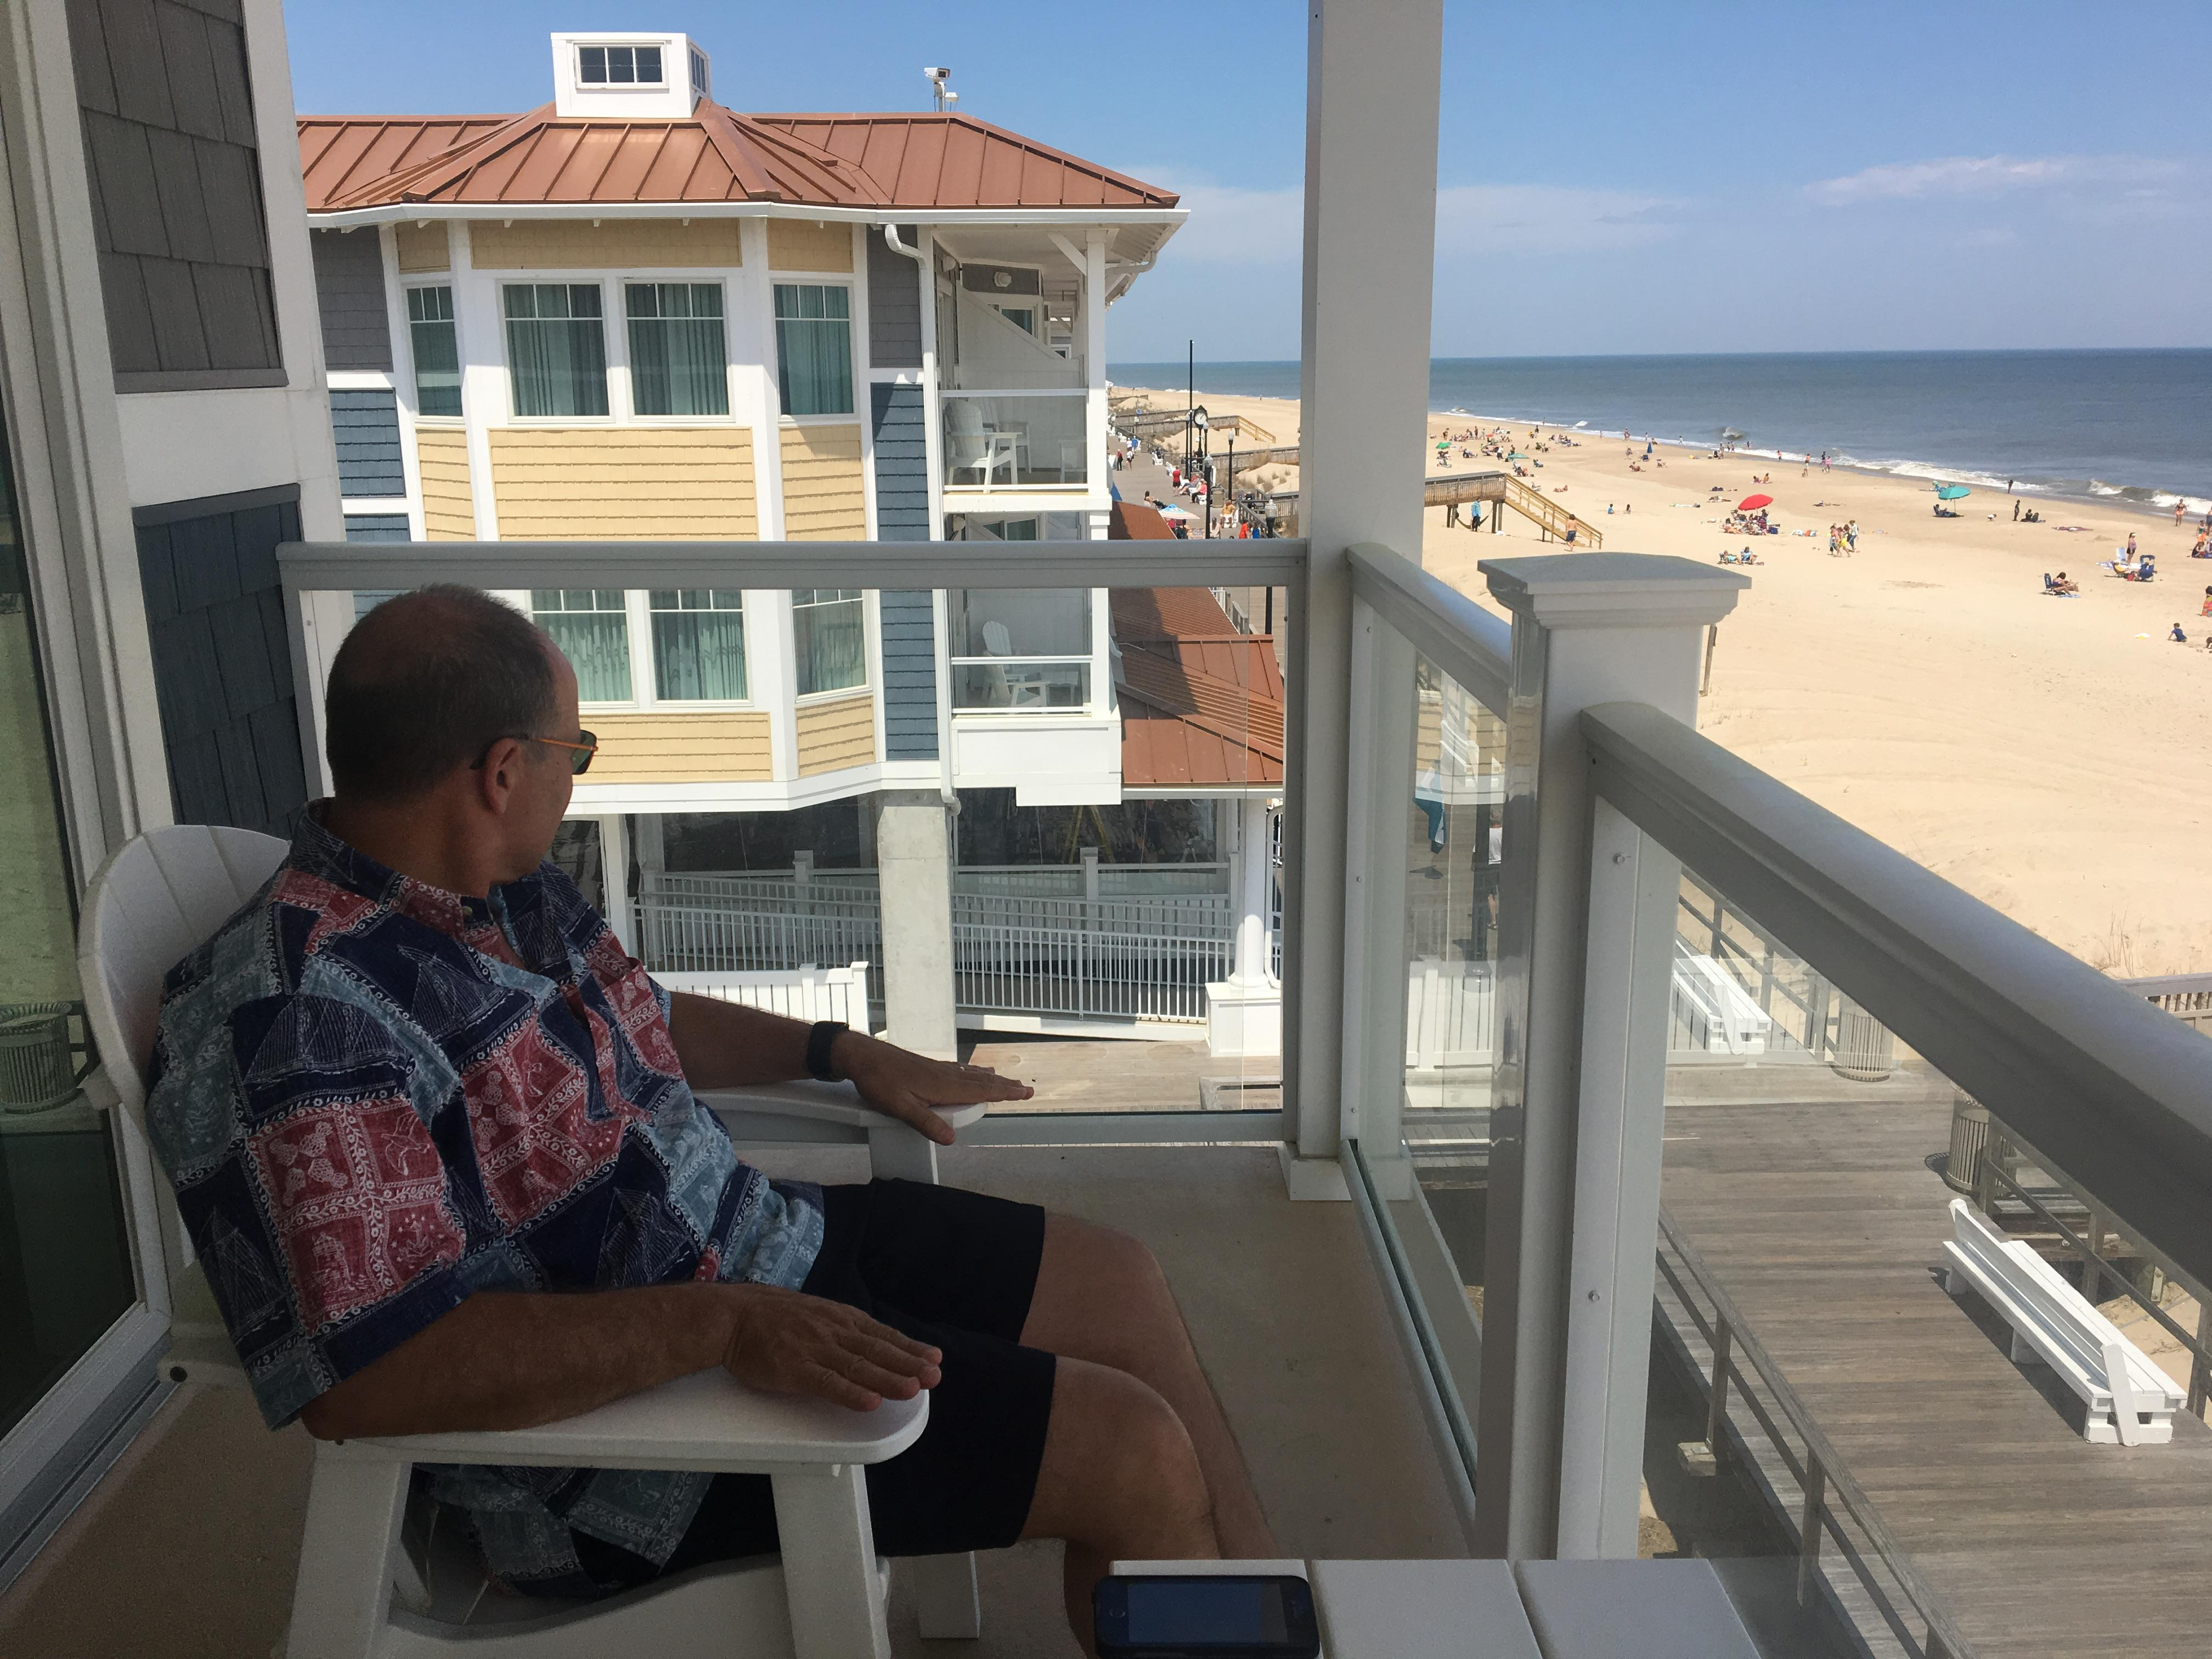 Bethany Beach Ocean Suites Residence Inn By Marriott In Rehoboth Beach Hotel Rates Reviews On Orbitz